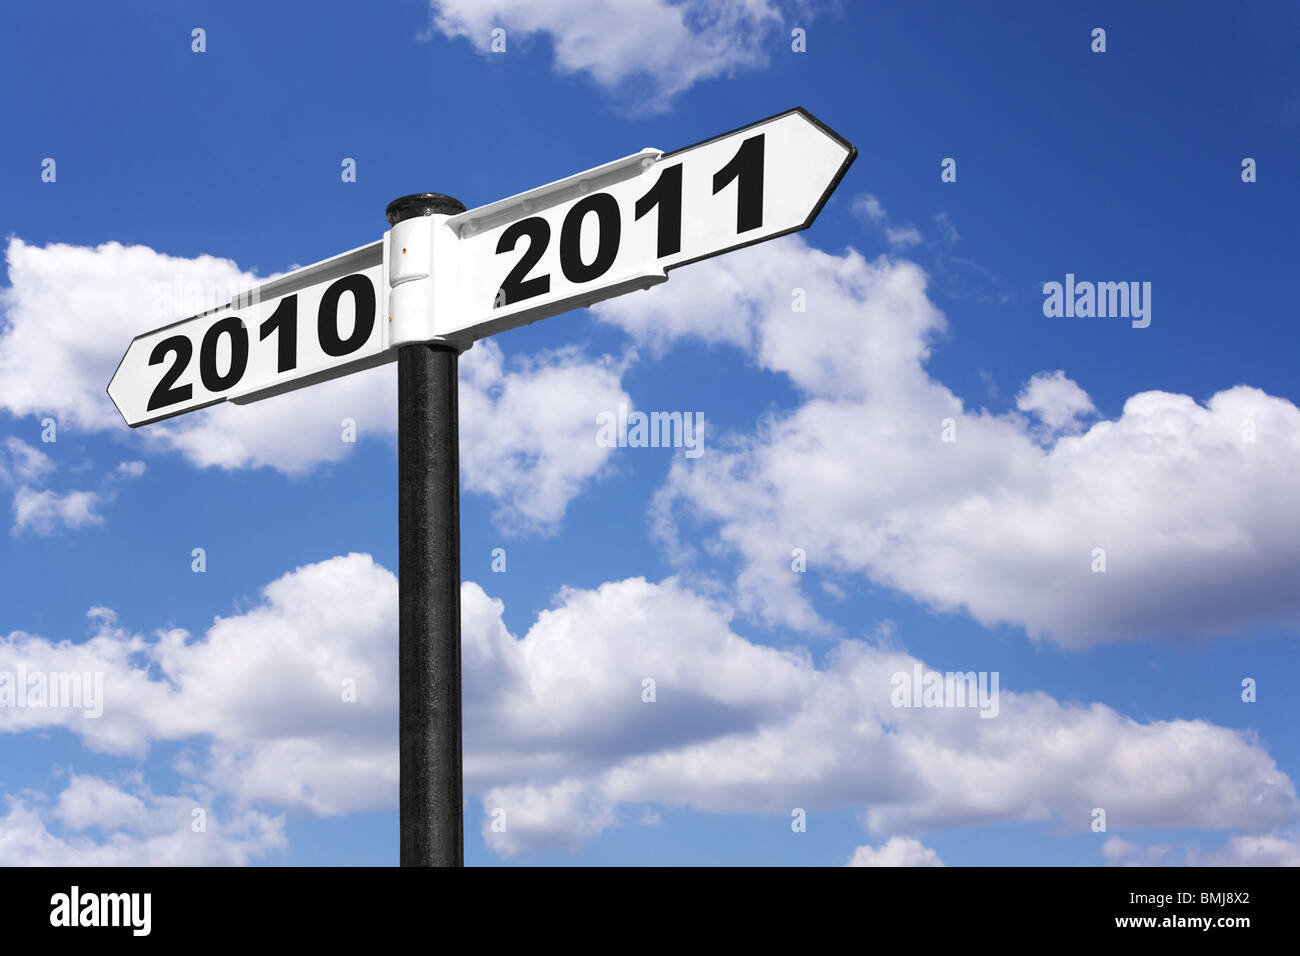 New year signpost for the years 2010 and 2011 - Stock Image